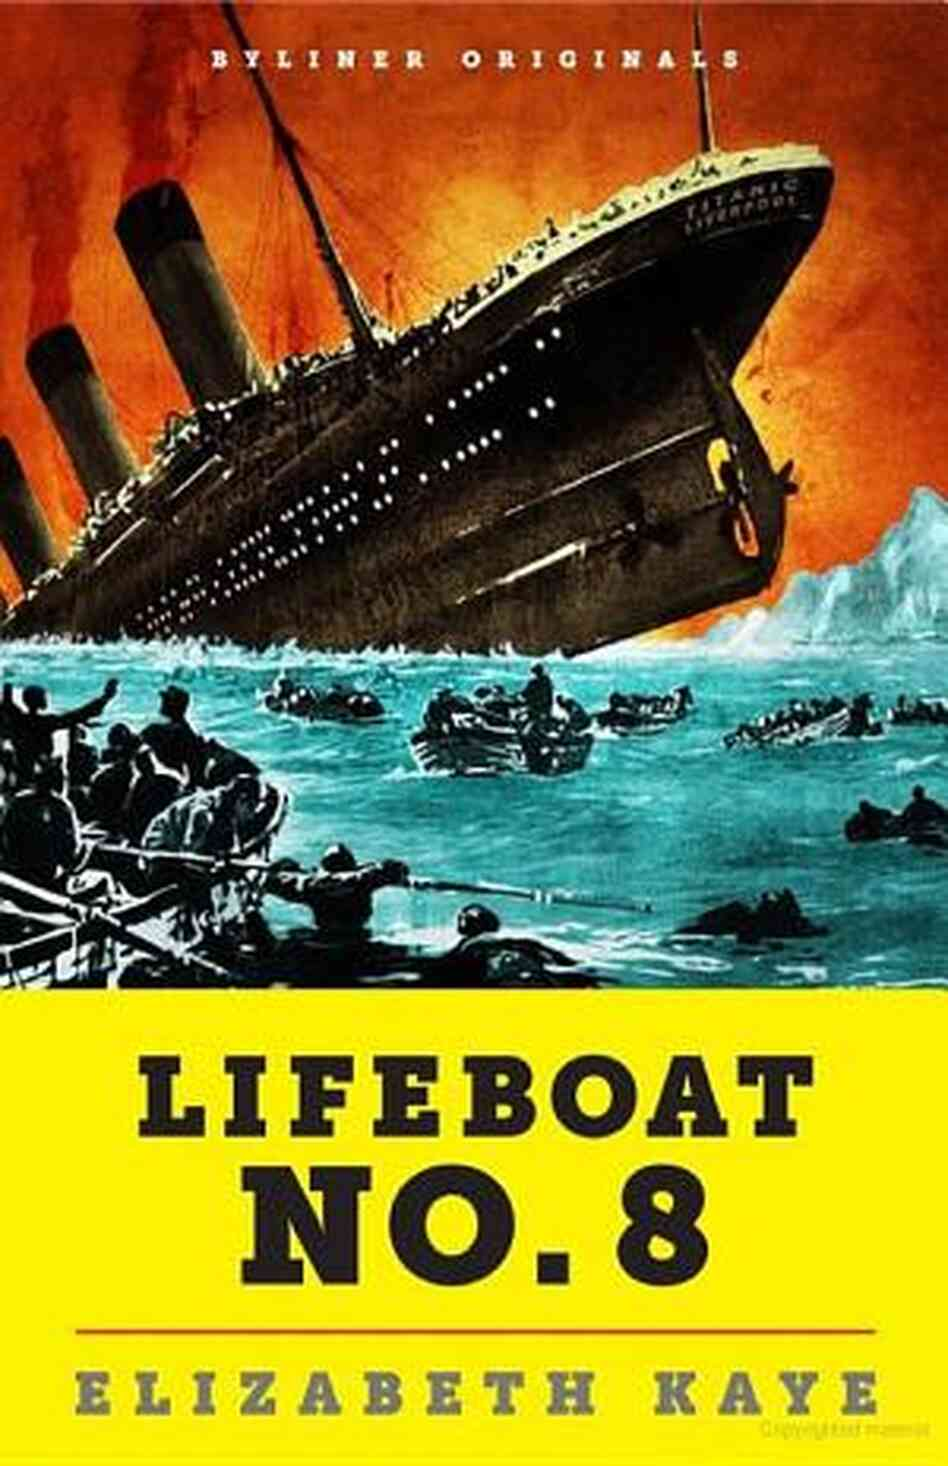 Lifeboat No. 8